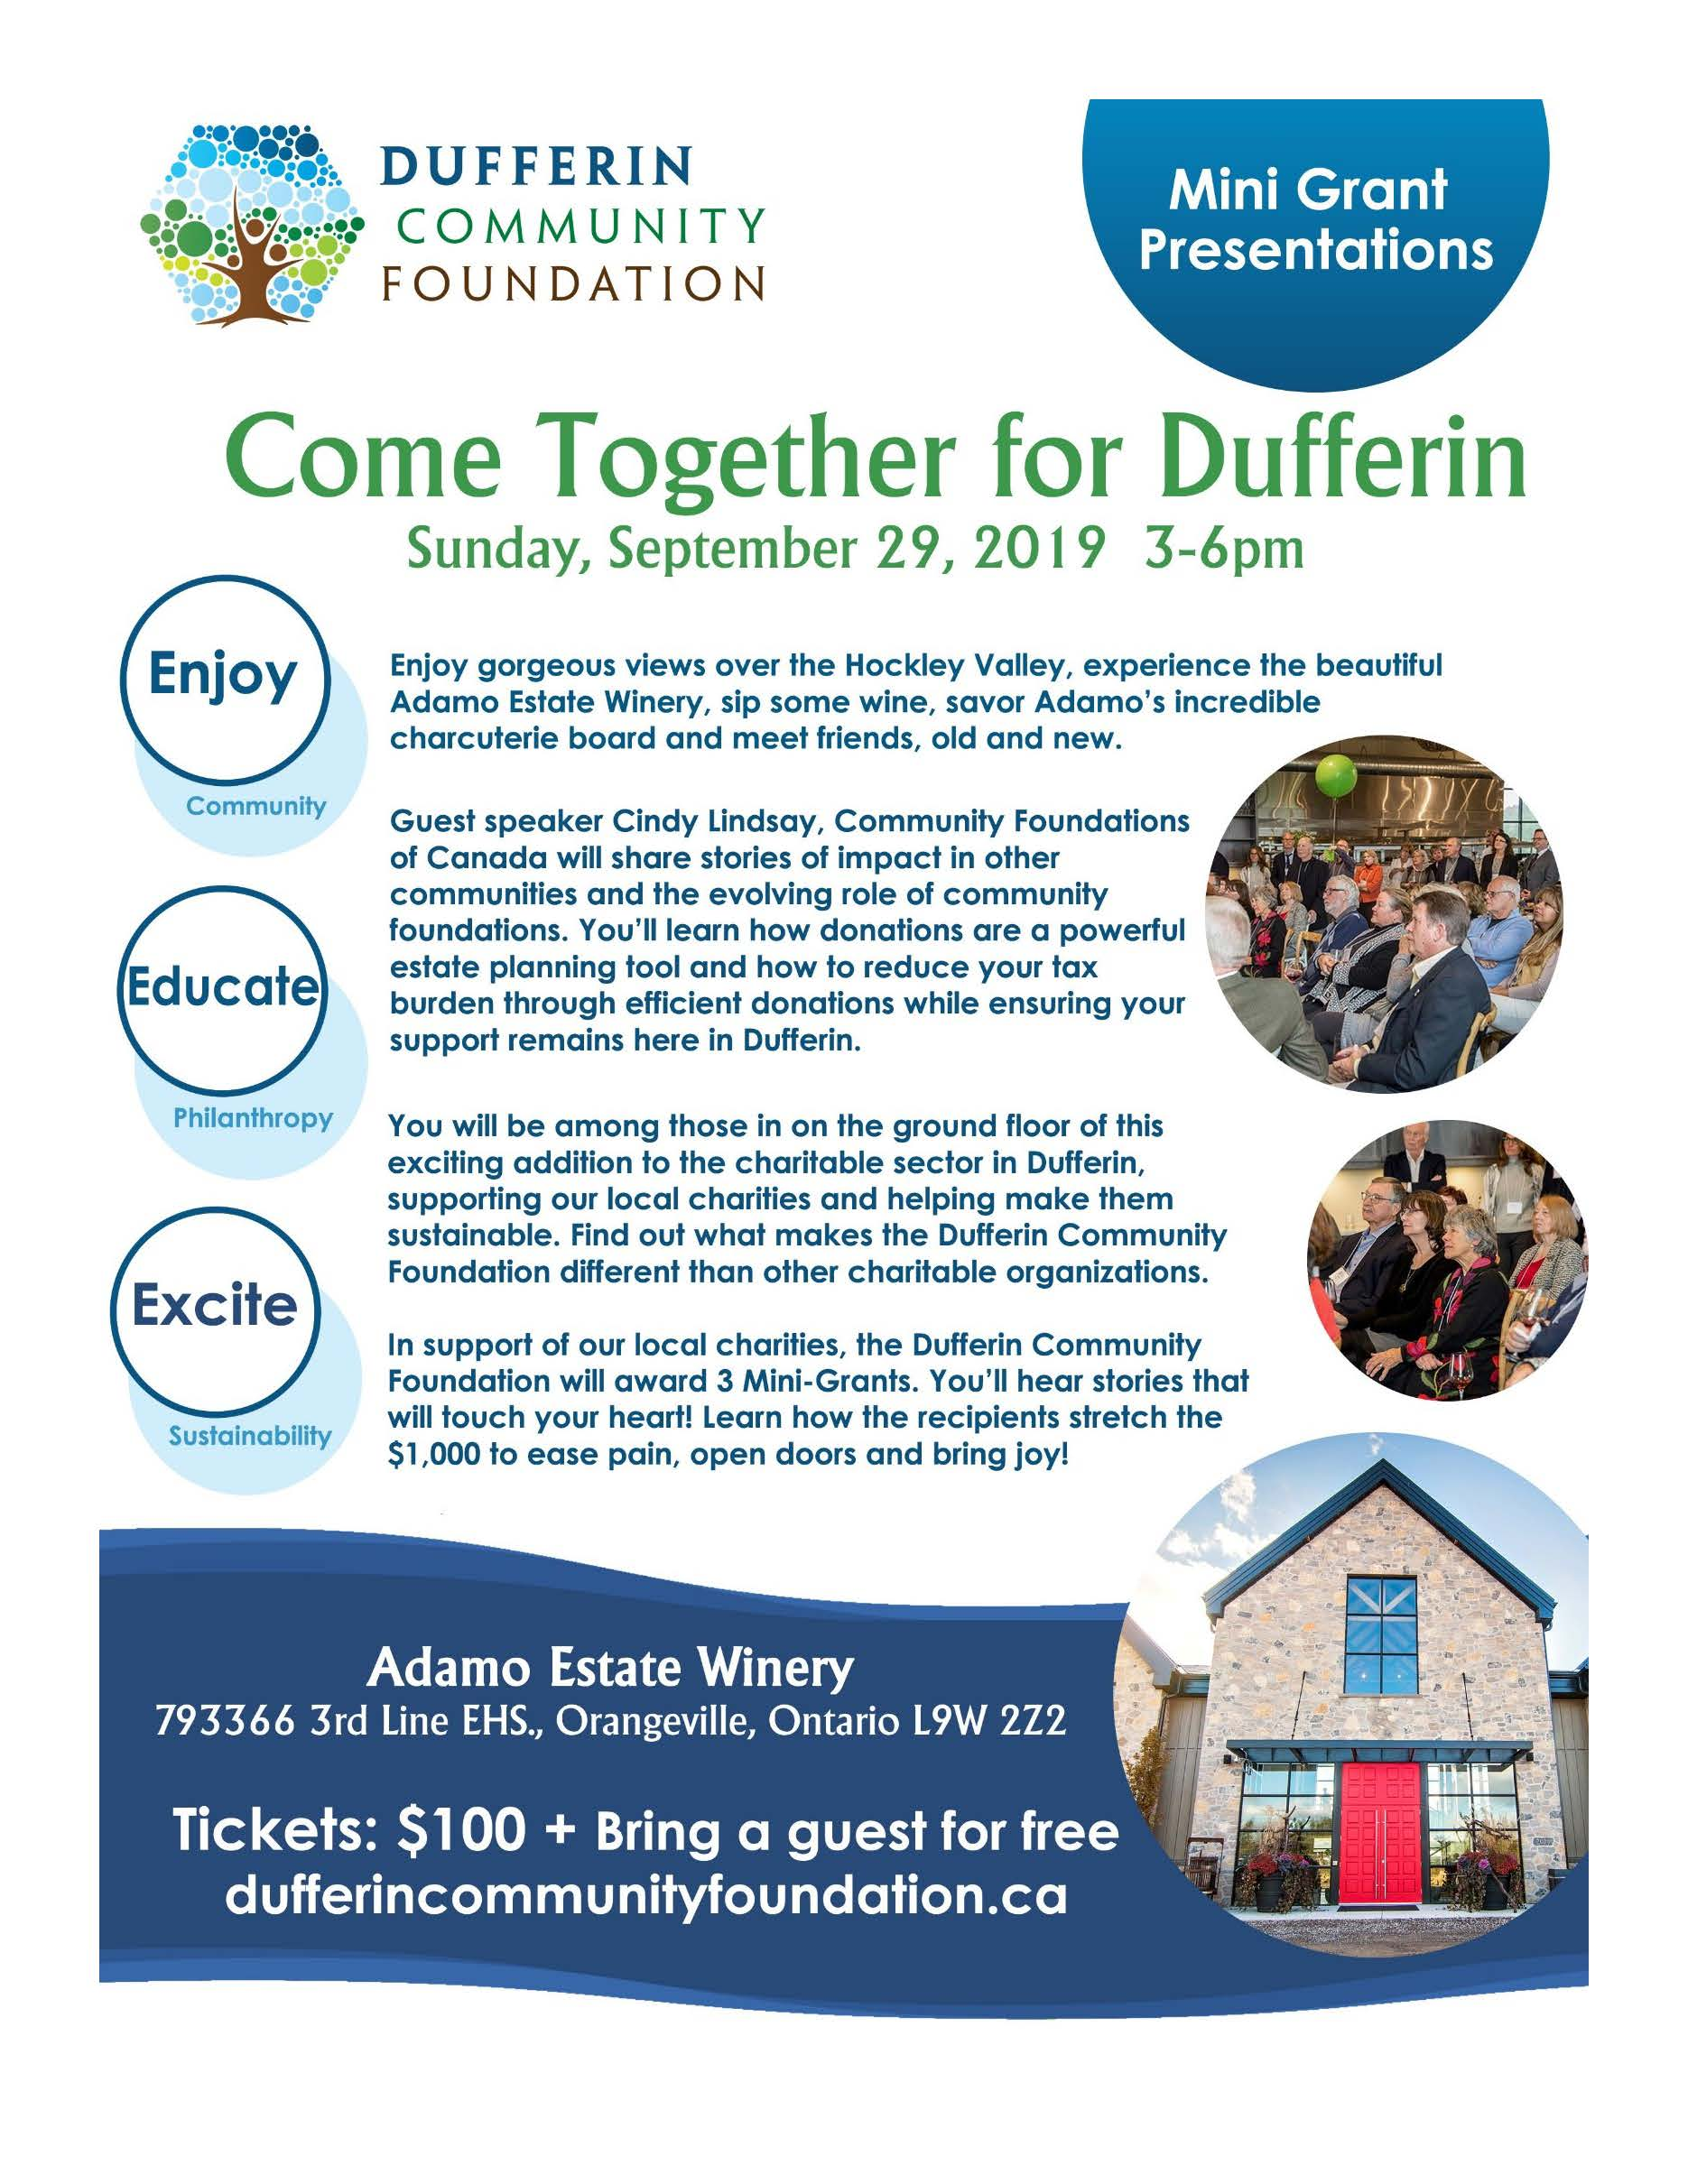 Come Together for Dufferin Poster